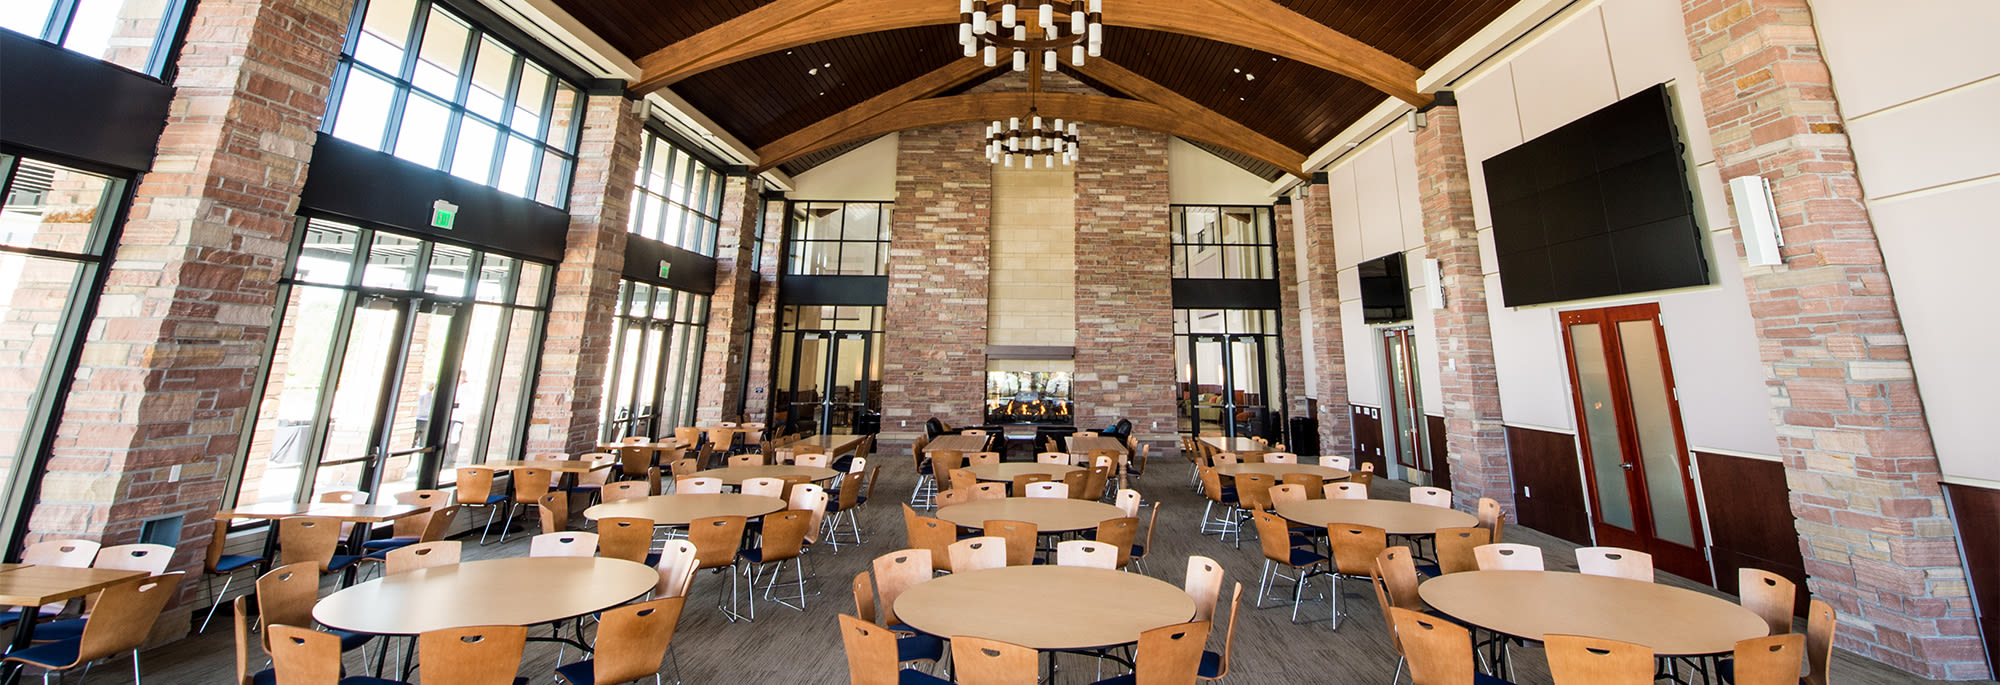 Great Room of Student Center